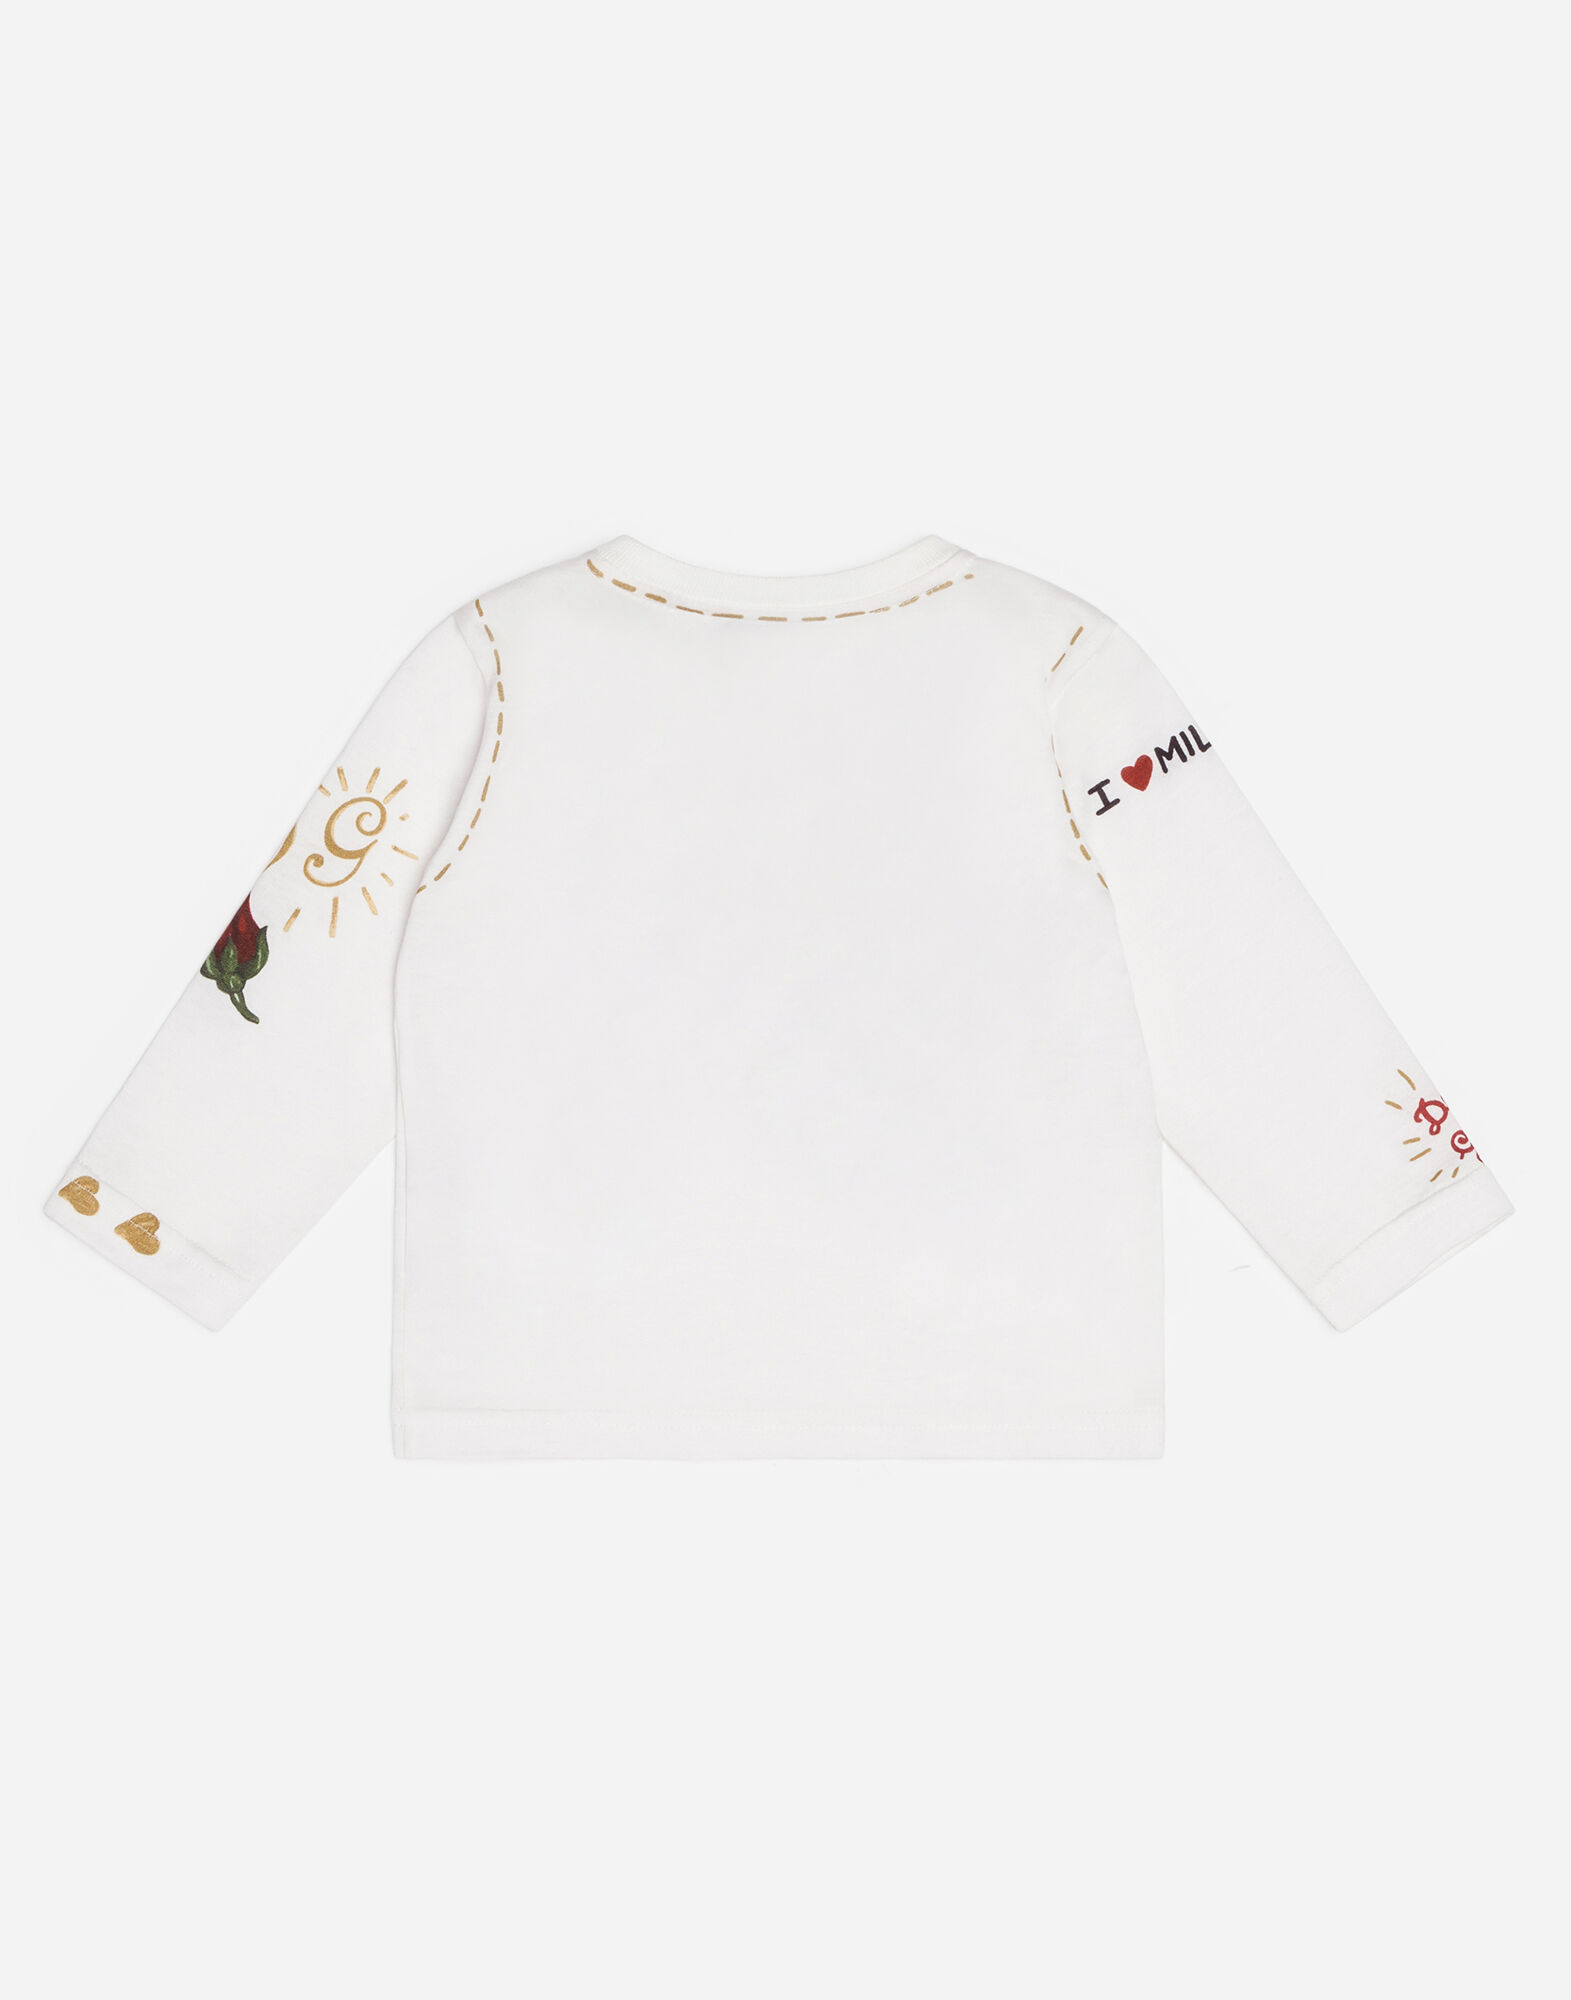 Dolce&Gabbana PRINTED COTTON T-SHIRT WITH PATCHES